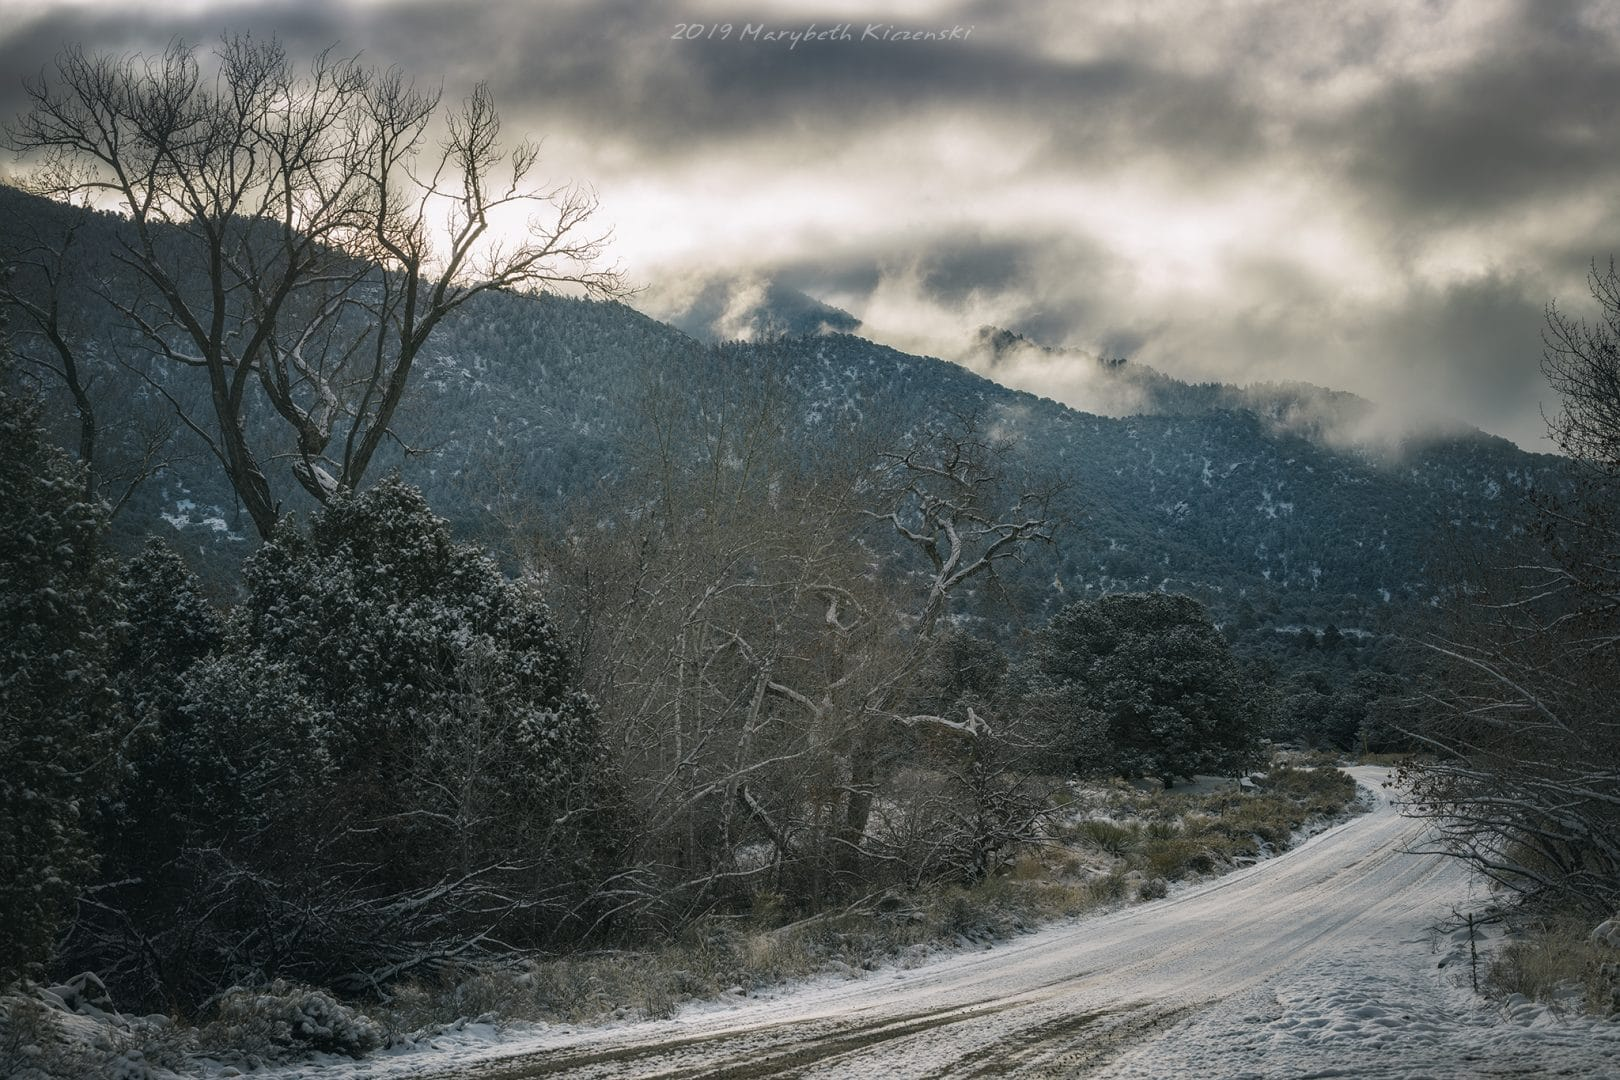 2019 Copyright MaryBeth Kiczenski. By the time I woke up, most of the snow was already melting.  This is the dirt road that led to the Airbnb I was staying at.  Front yard views to envy, that's for sure!